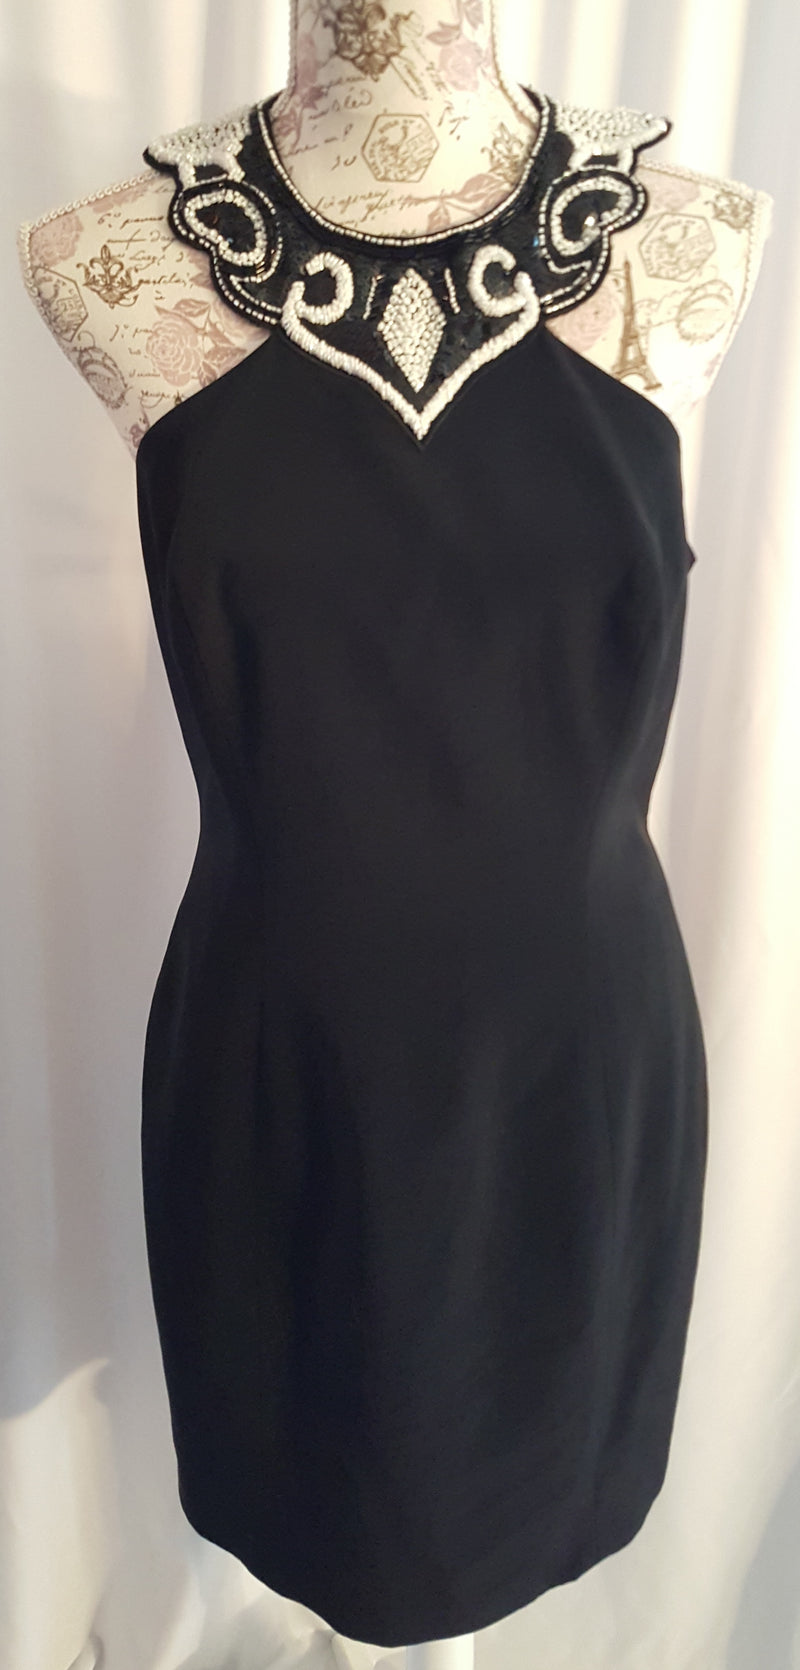 Nite Line Dress size 8